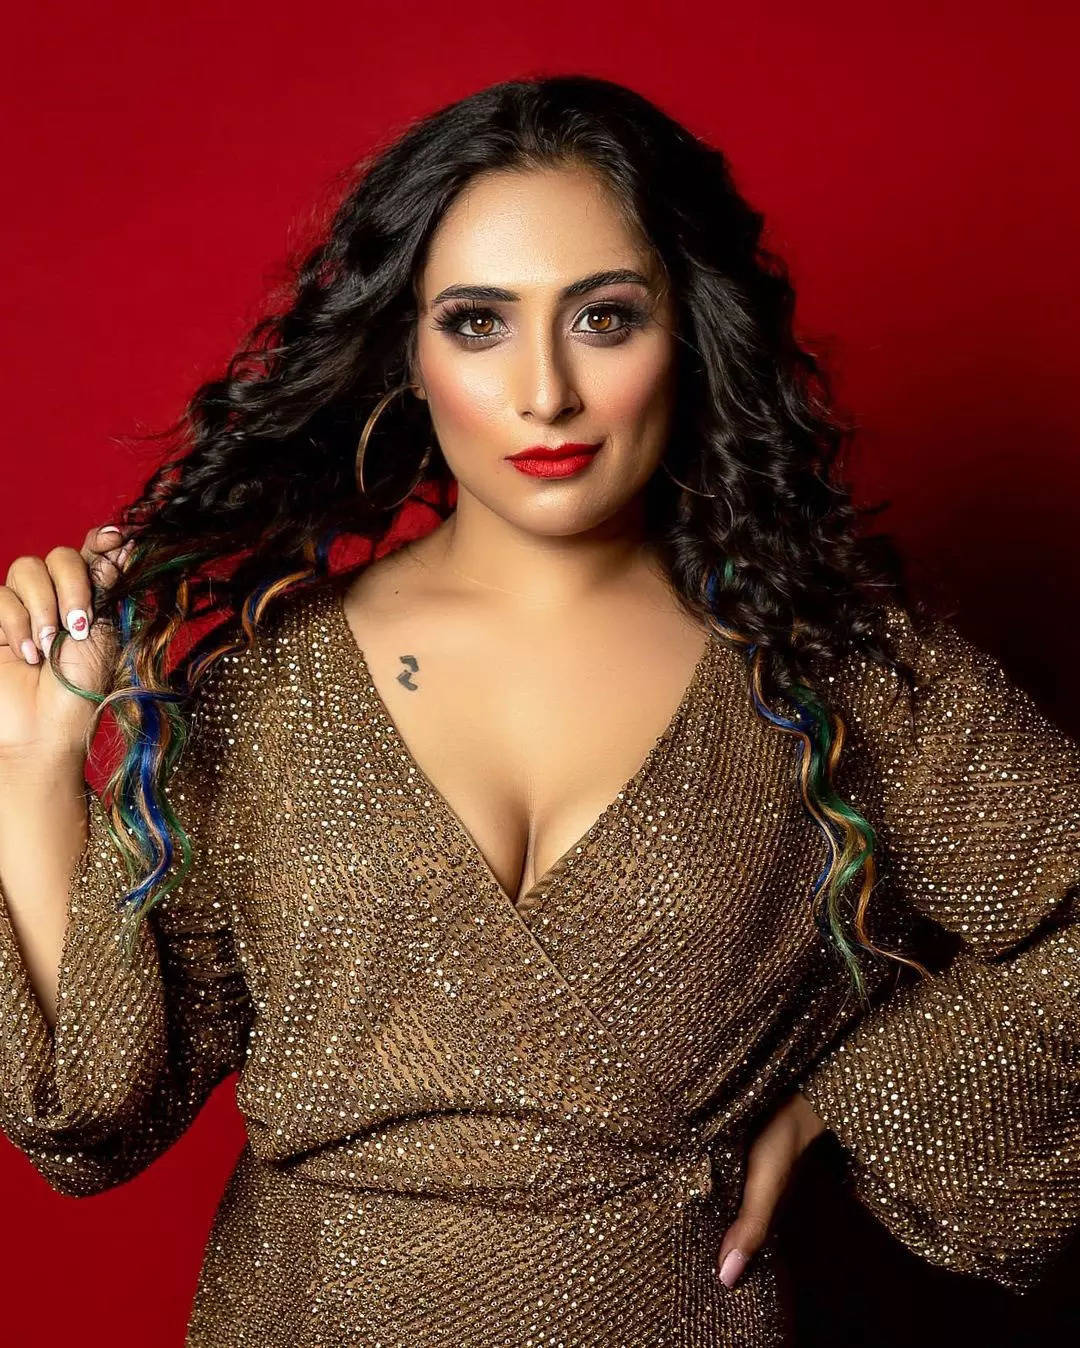 Roadies Rising winner Shweta Mehta's stunning pictures are sweeping the internet